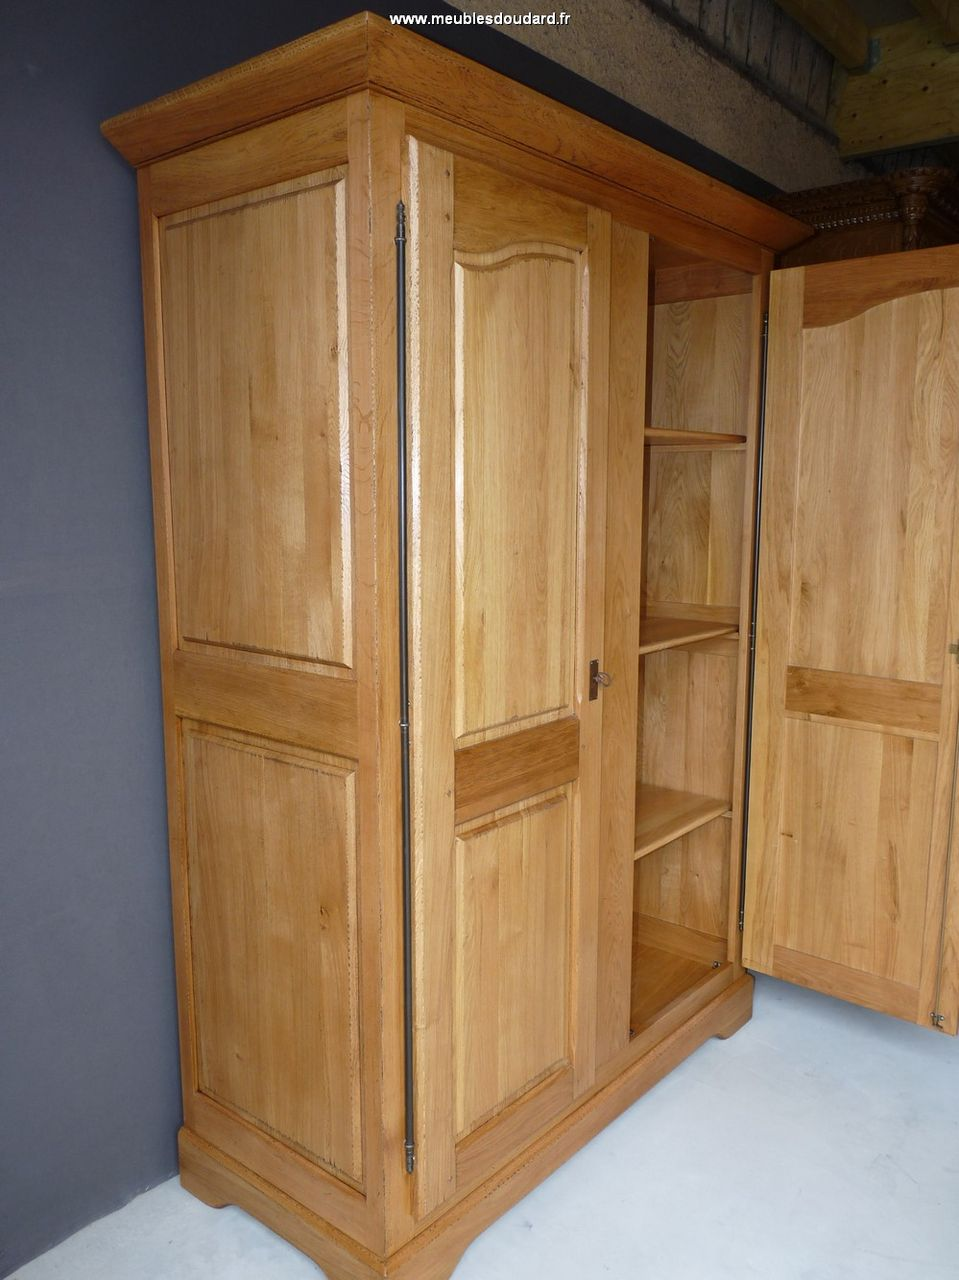 armoire en bois massif armoire de normandie armoire en. Black Bedroom Furniture Sets. Home Design Ideas